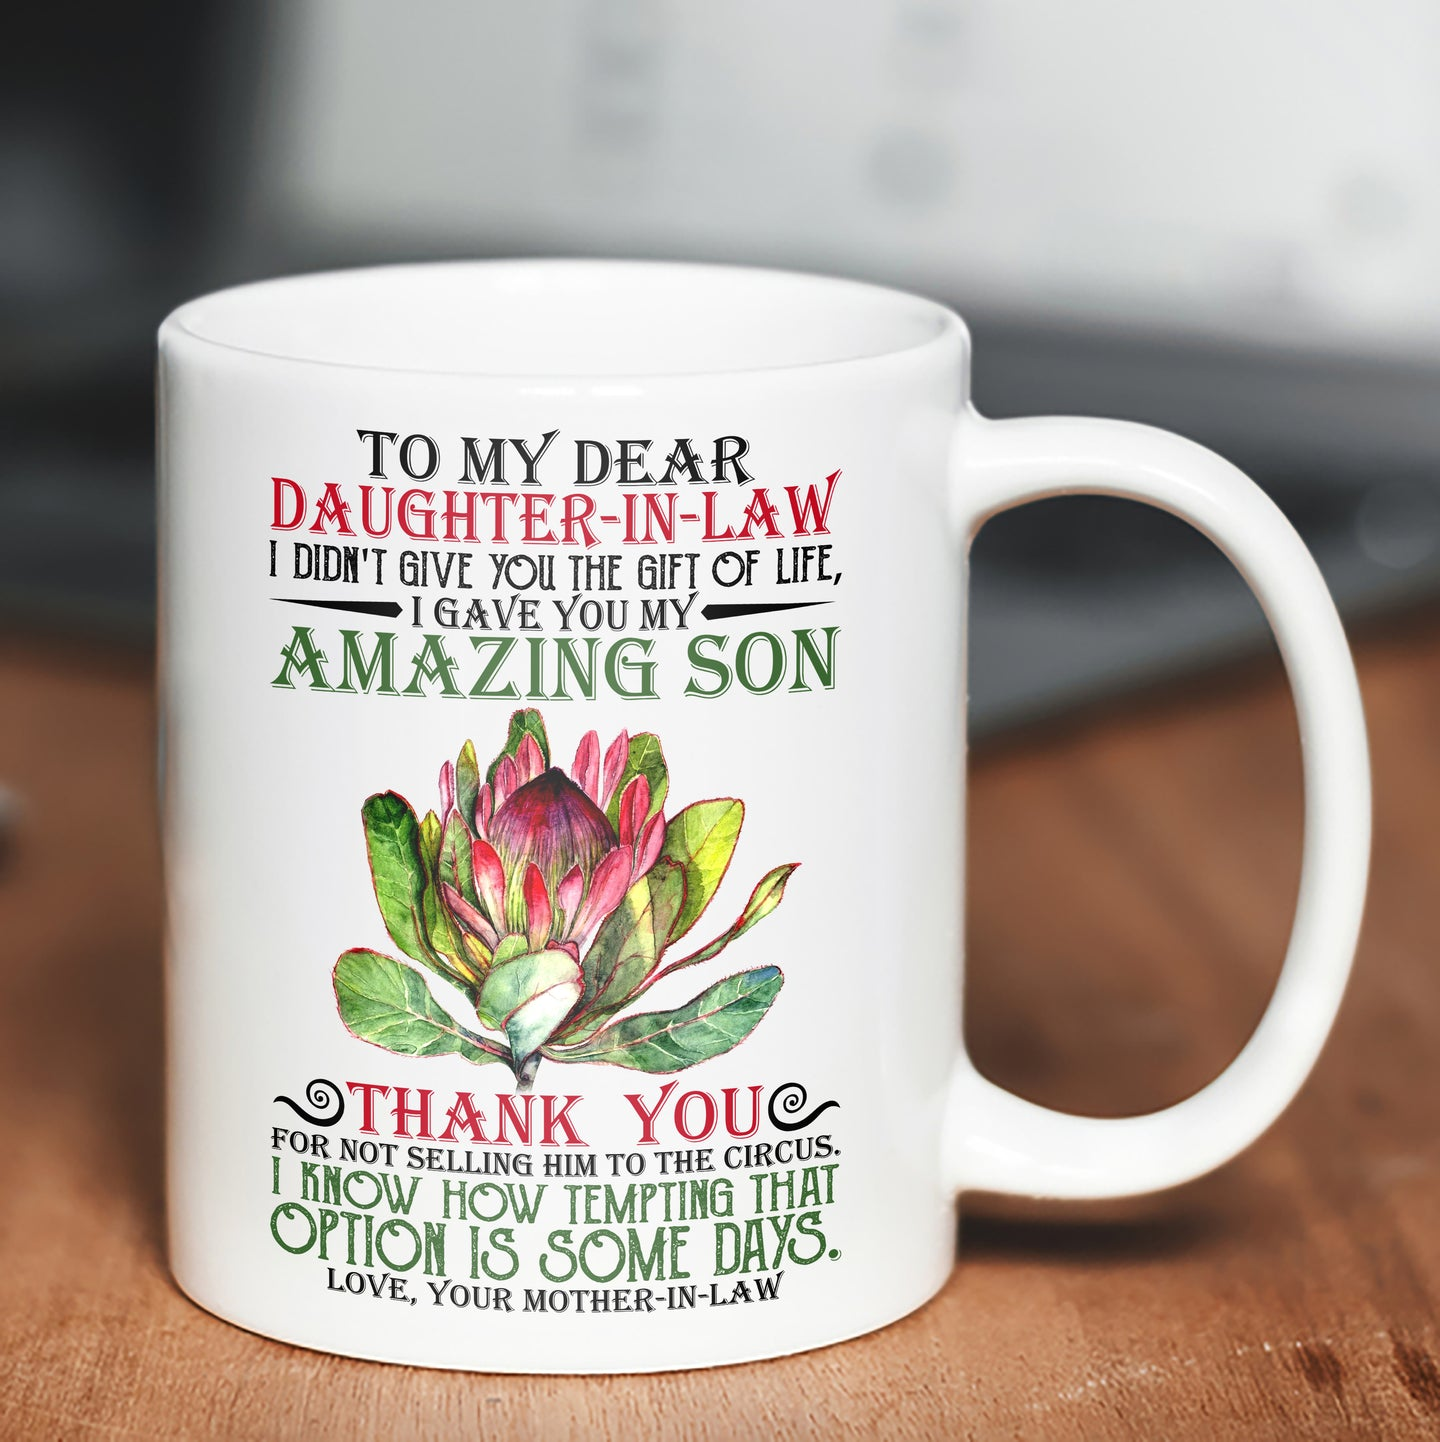 Trendy Mom To Daughter In Law Graphic Mug Protea Flower Themed Designs For Sale - 11oz White Mug Drinkware [variant_title]